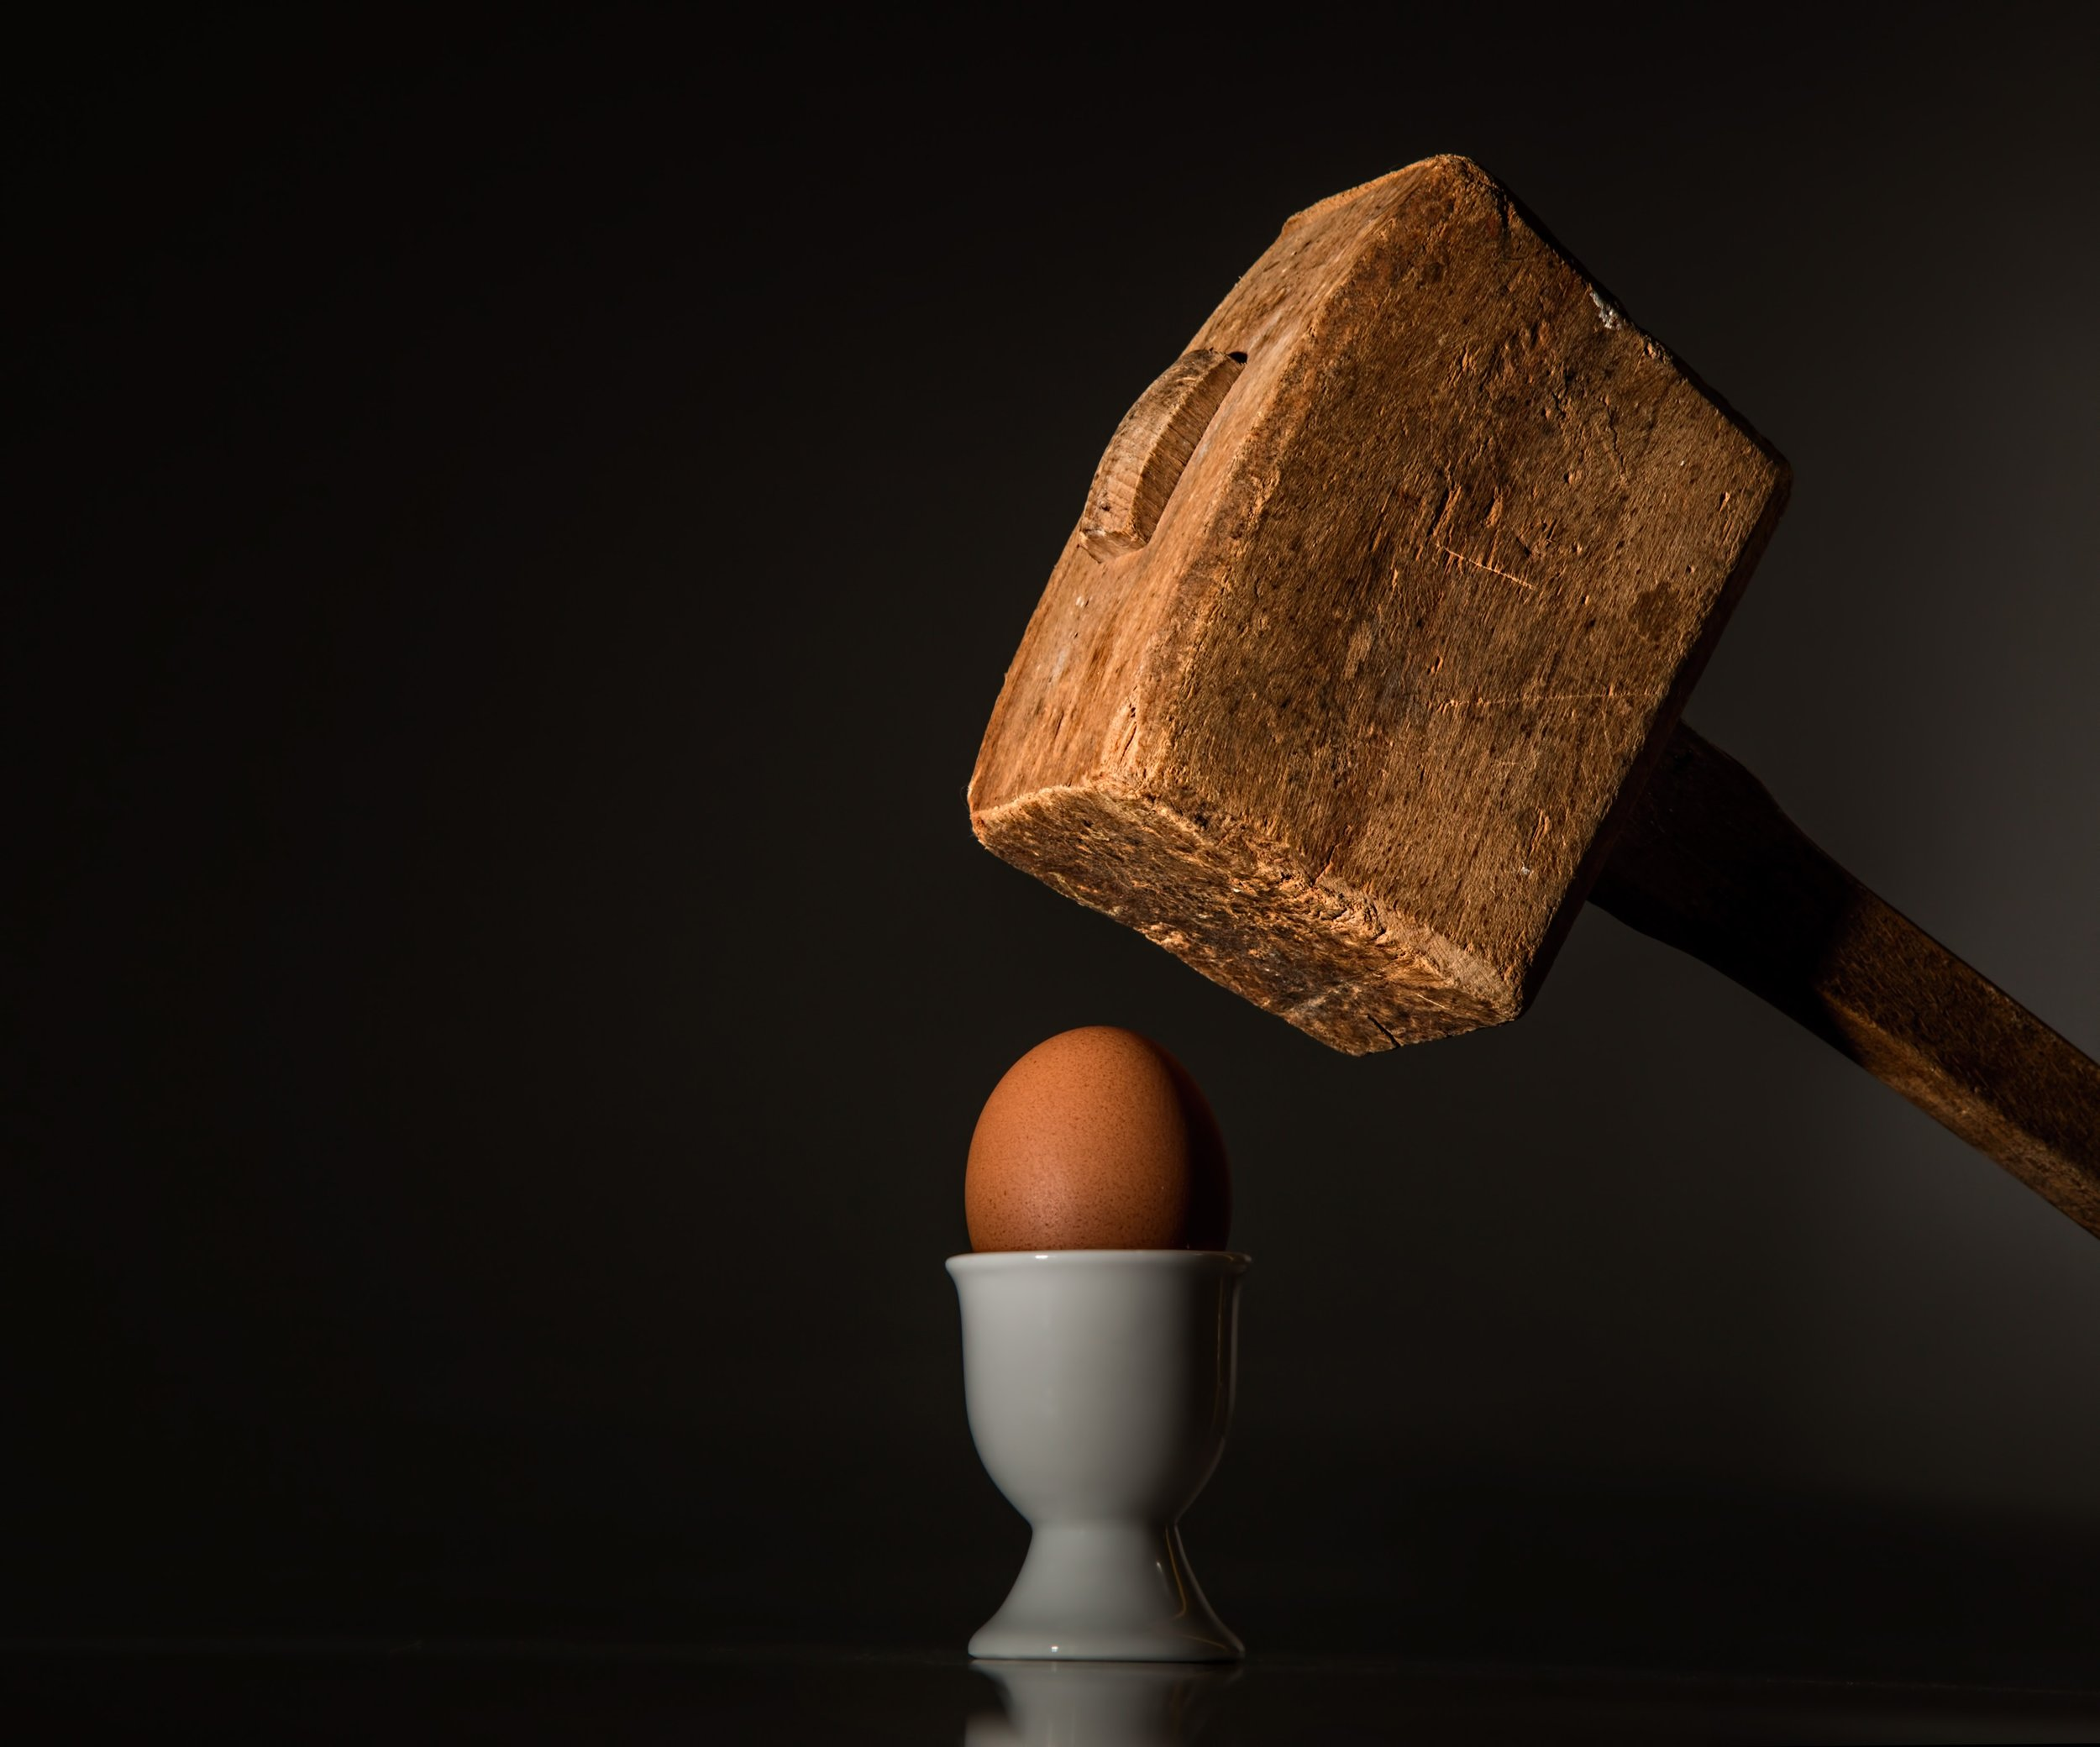 Ideas are like eggs.Once you break them open, you will never get them back in the shell.